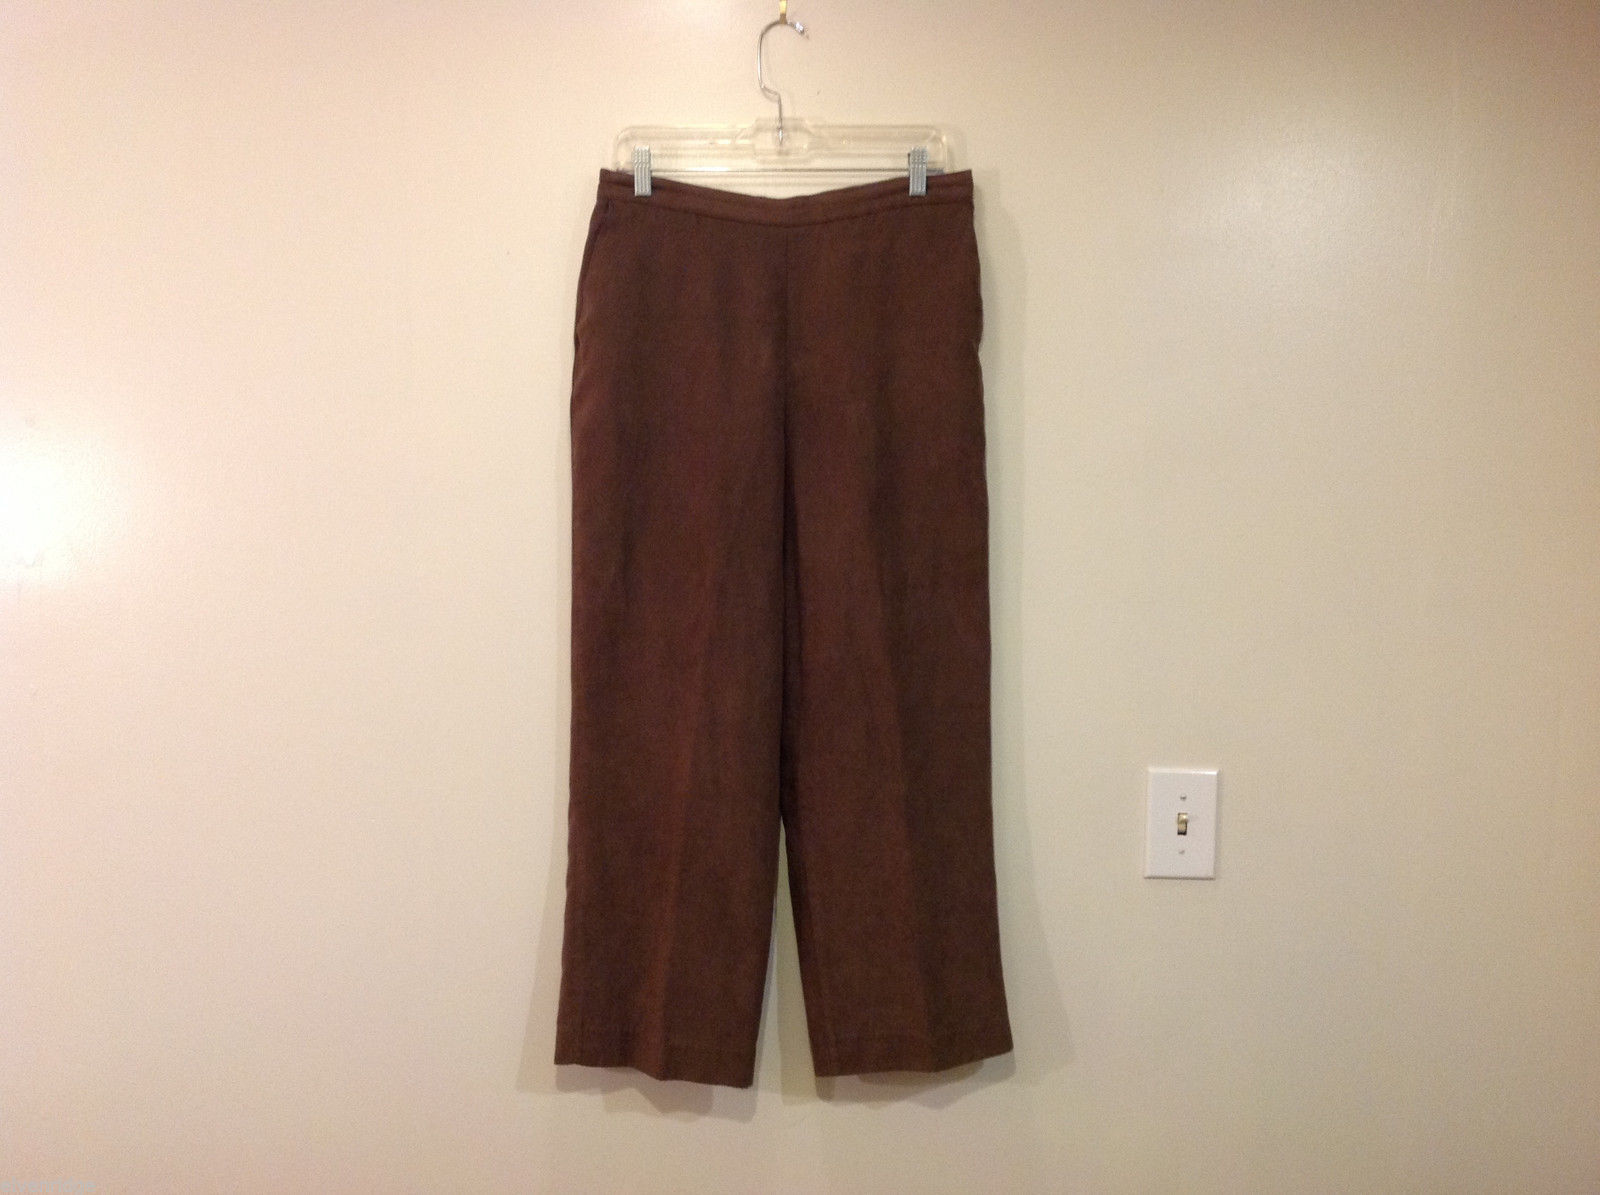 Alfred Dunner Brown Mole Skin (Microfiber Suede) Cropped Pants, Size 14